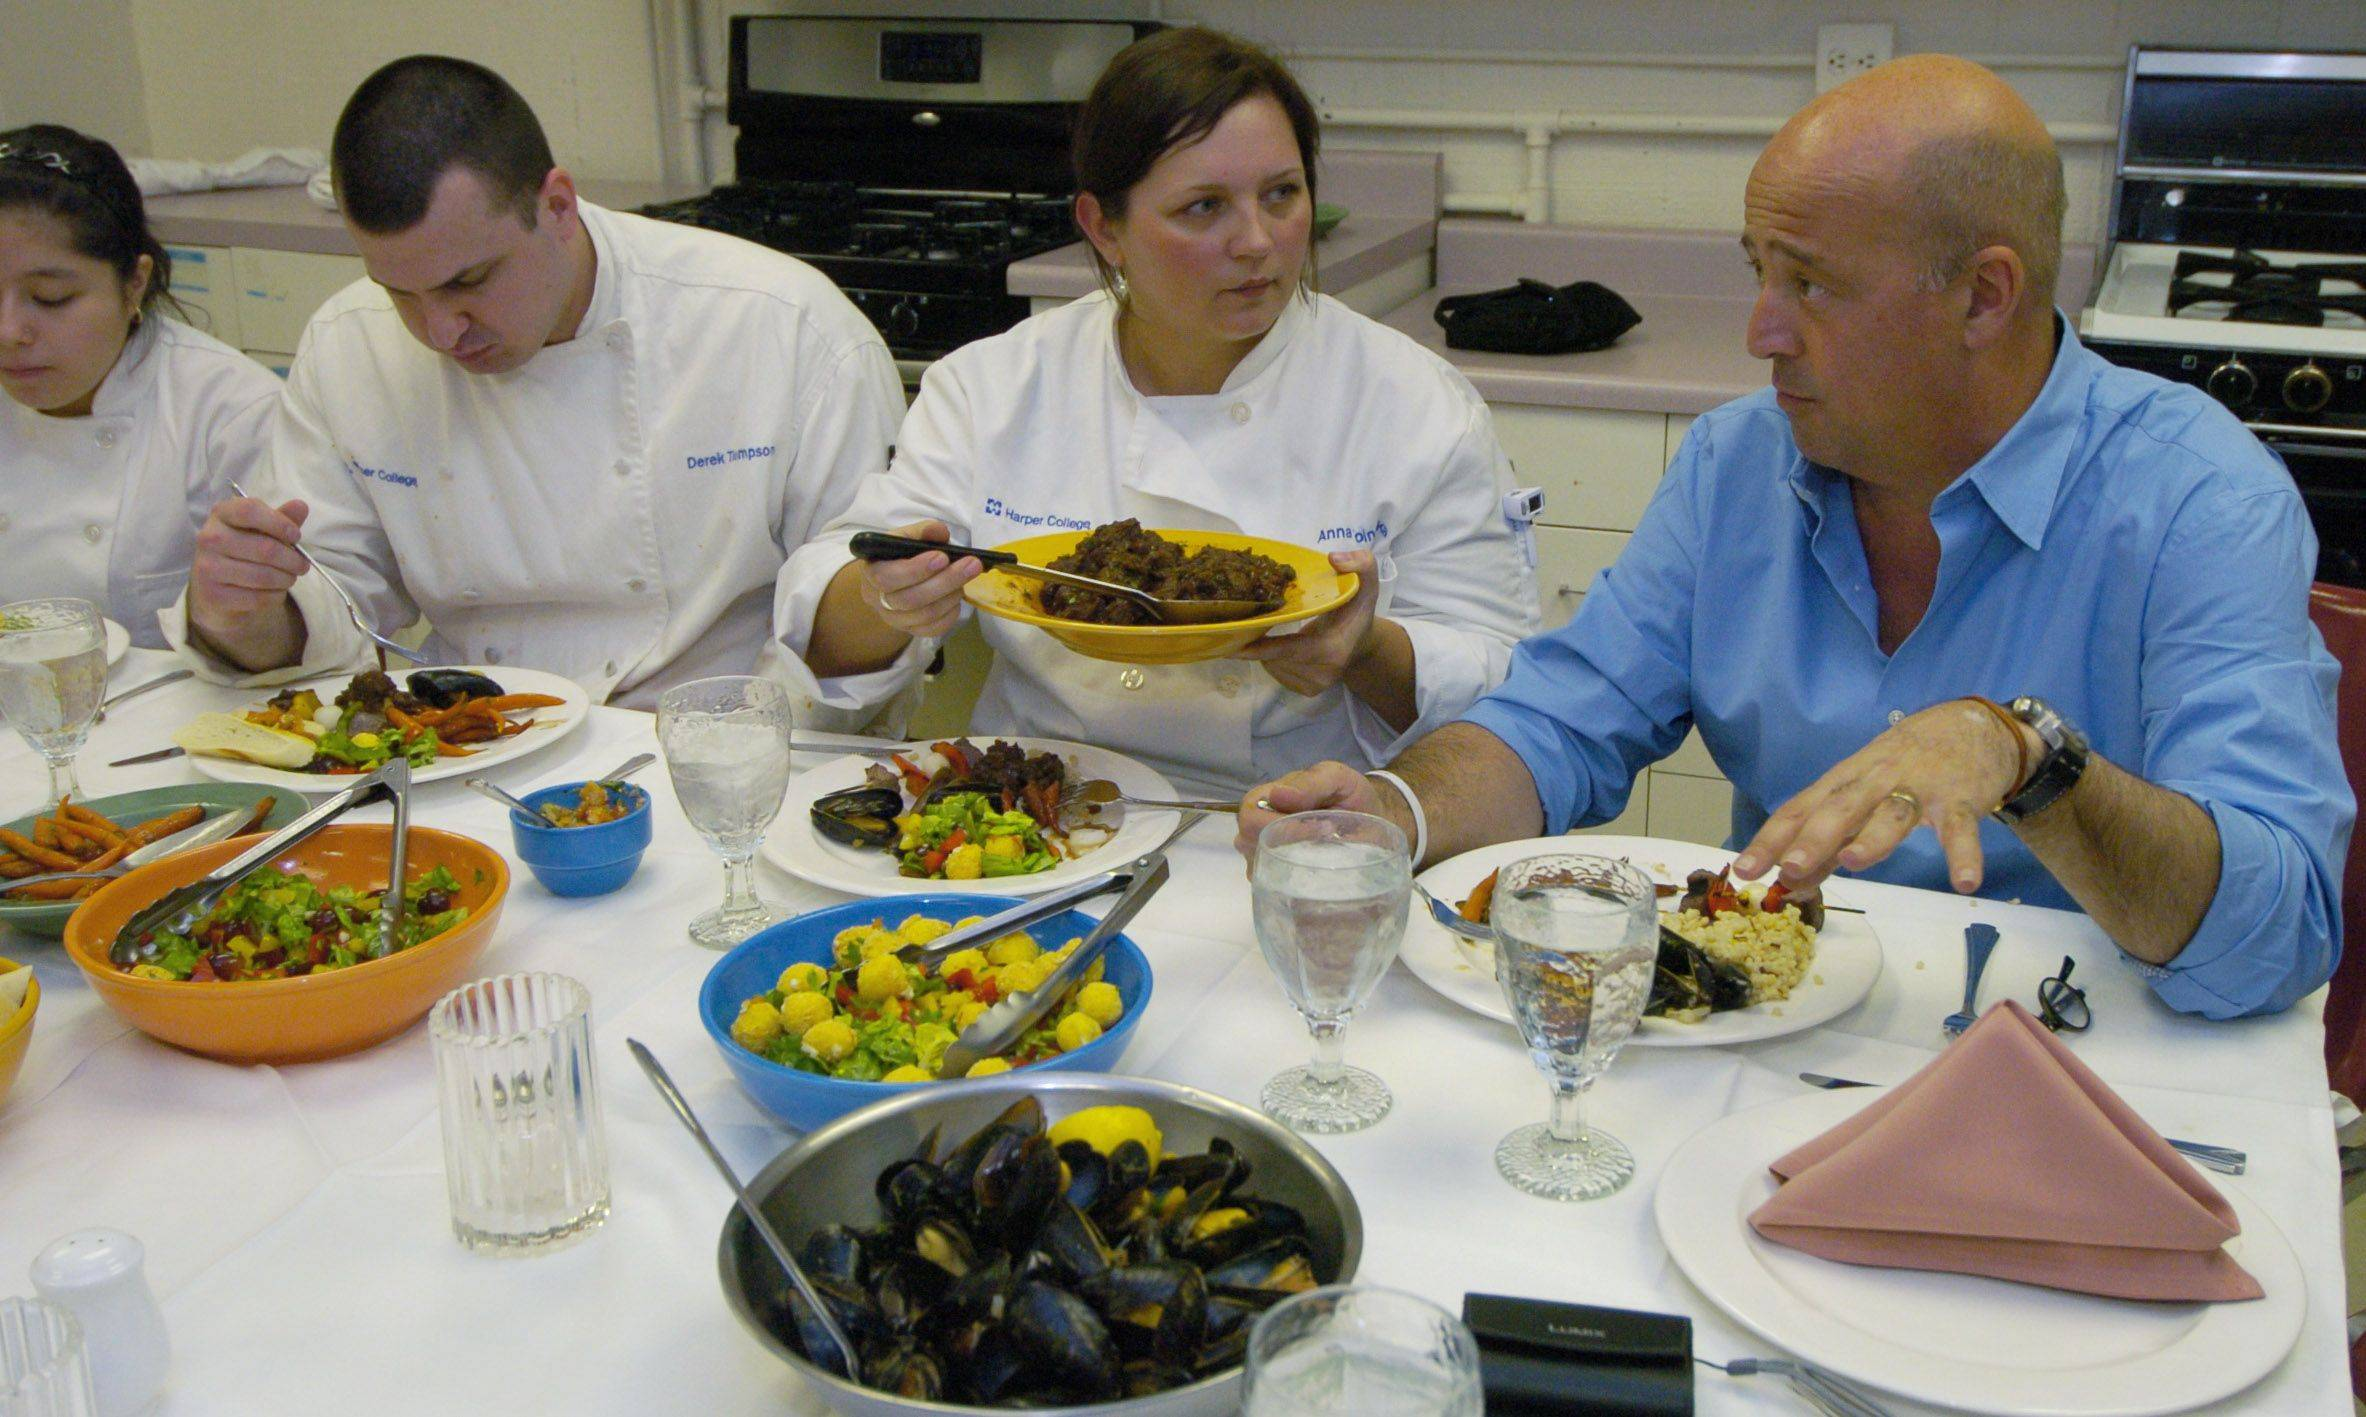 Andrew Zimmern, right, chats with Anna Woinska of Schaumburg during a dinner she and other culinary students prepared for the Travel Channel host before his presentation at Harper College in Palatine.